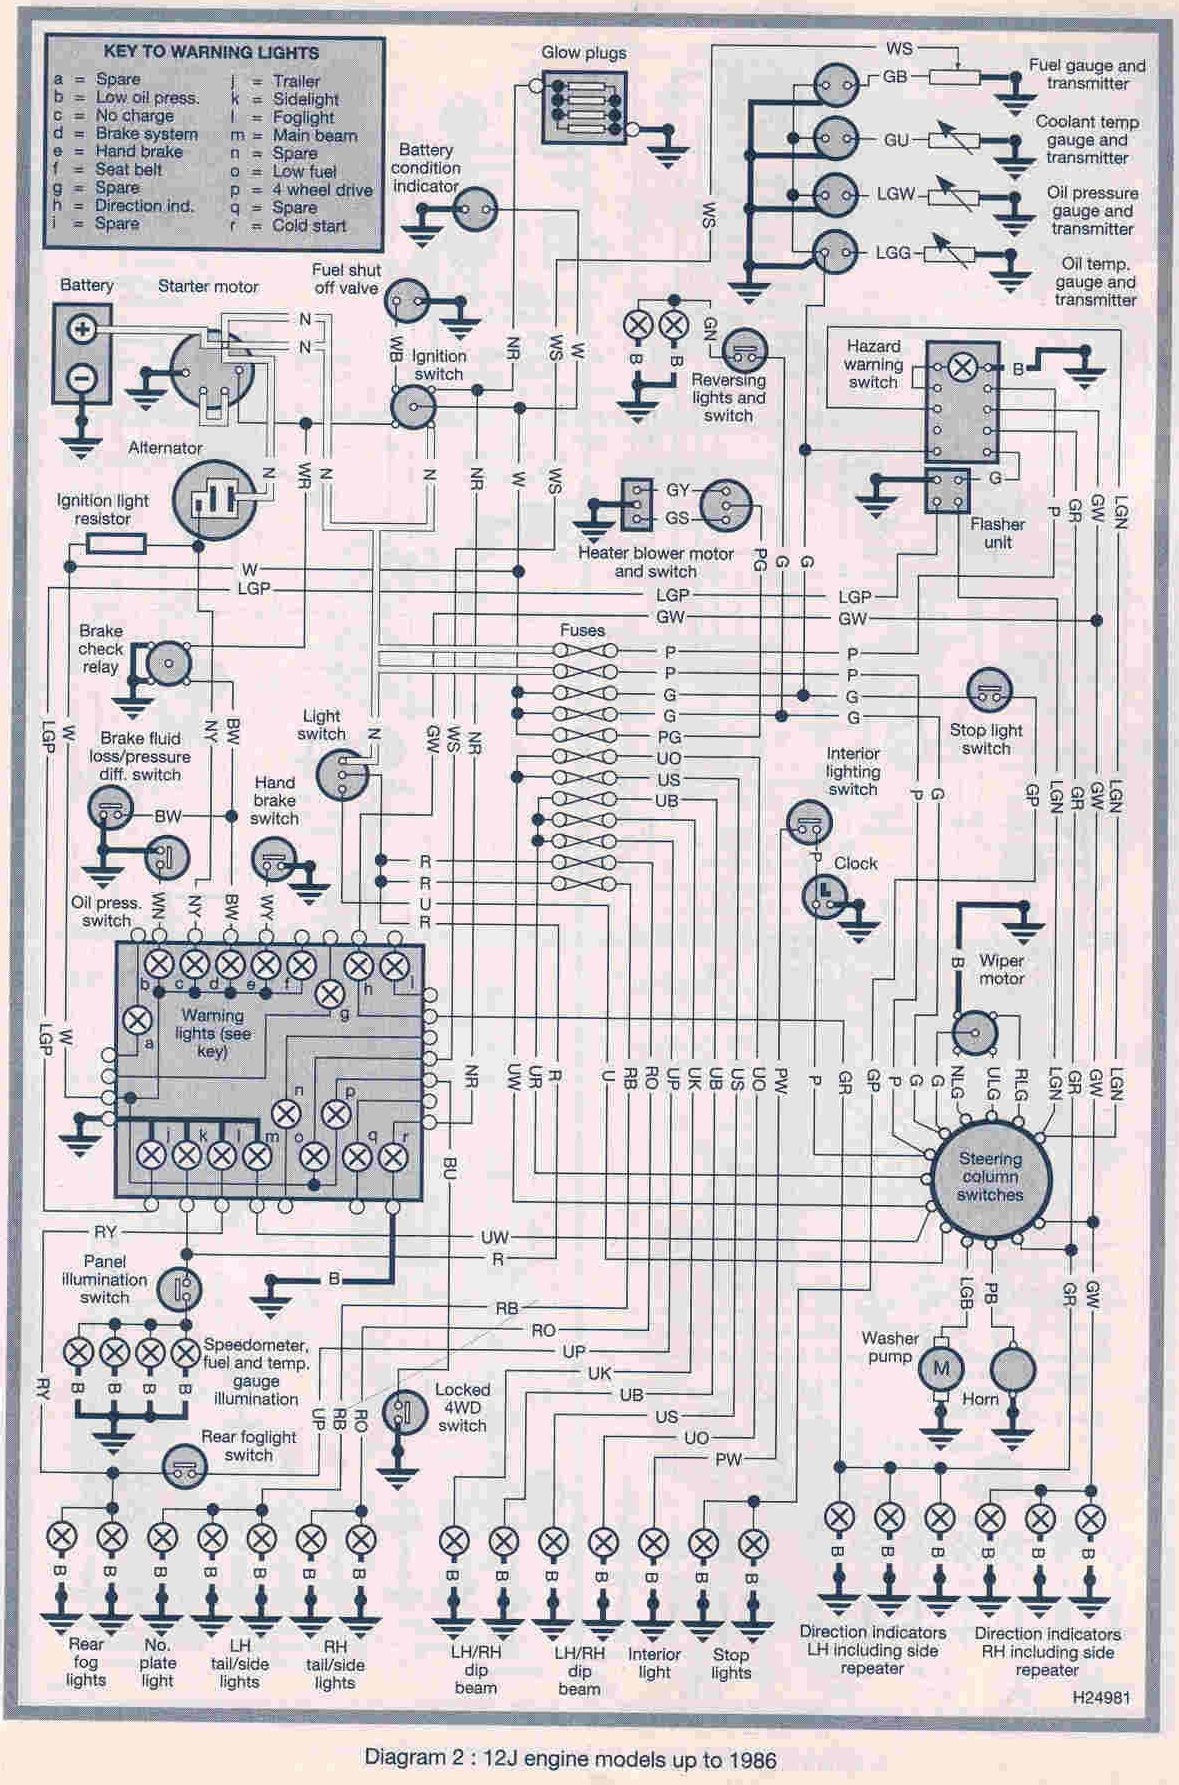 Land Rover 90 Indicator Wiring Diagram Start Building A Freelander Radio Help Requested With 1990 V8 Loom Diagrams Defender Forum Rh Forums Lr4x4 Com Discovery Range Parts